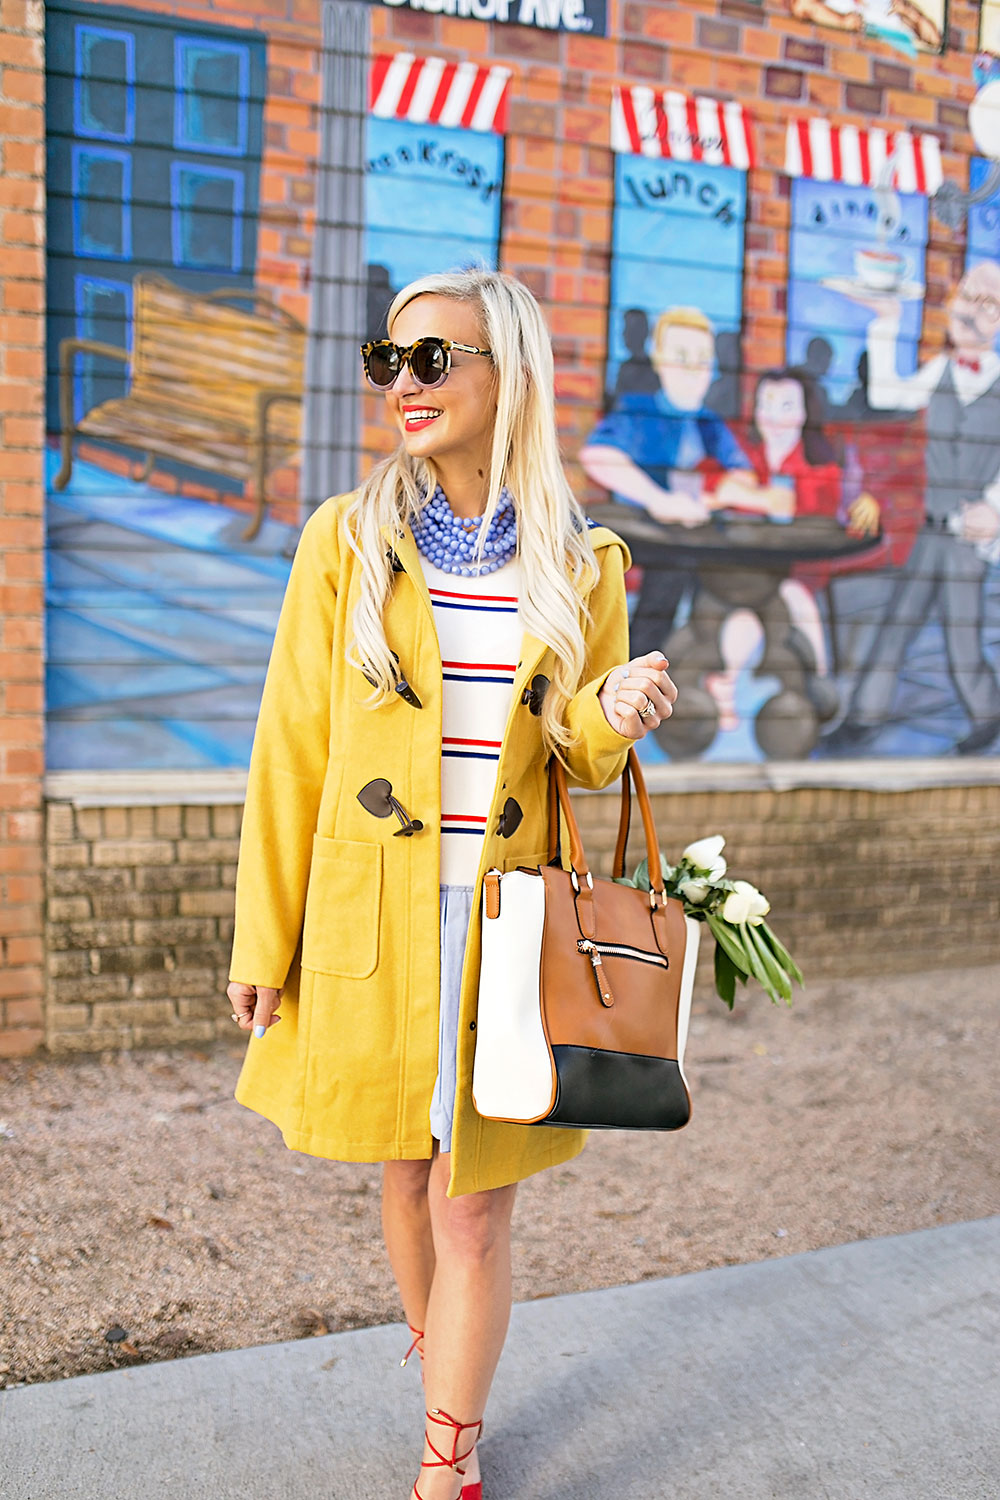 vandi-fair-blog-lauren-vandiver-dallas-texas-southern-fashion-blogger-modcloth-mustard-yellow-pea-coat-theatre-greetings-saffron-three-tone-satchel-bag-triple-the-charm-cognac-1